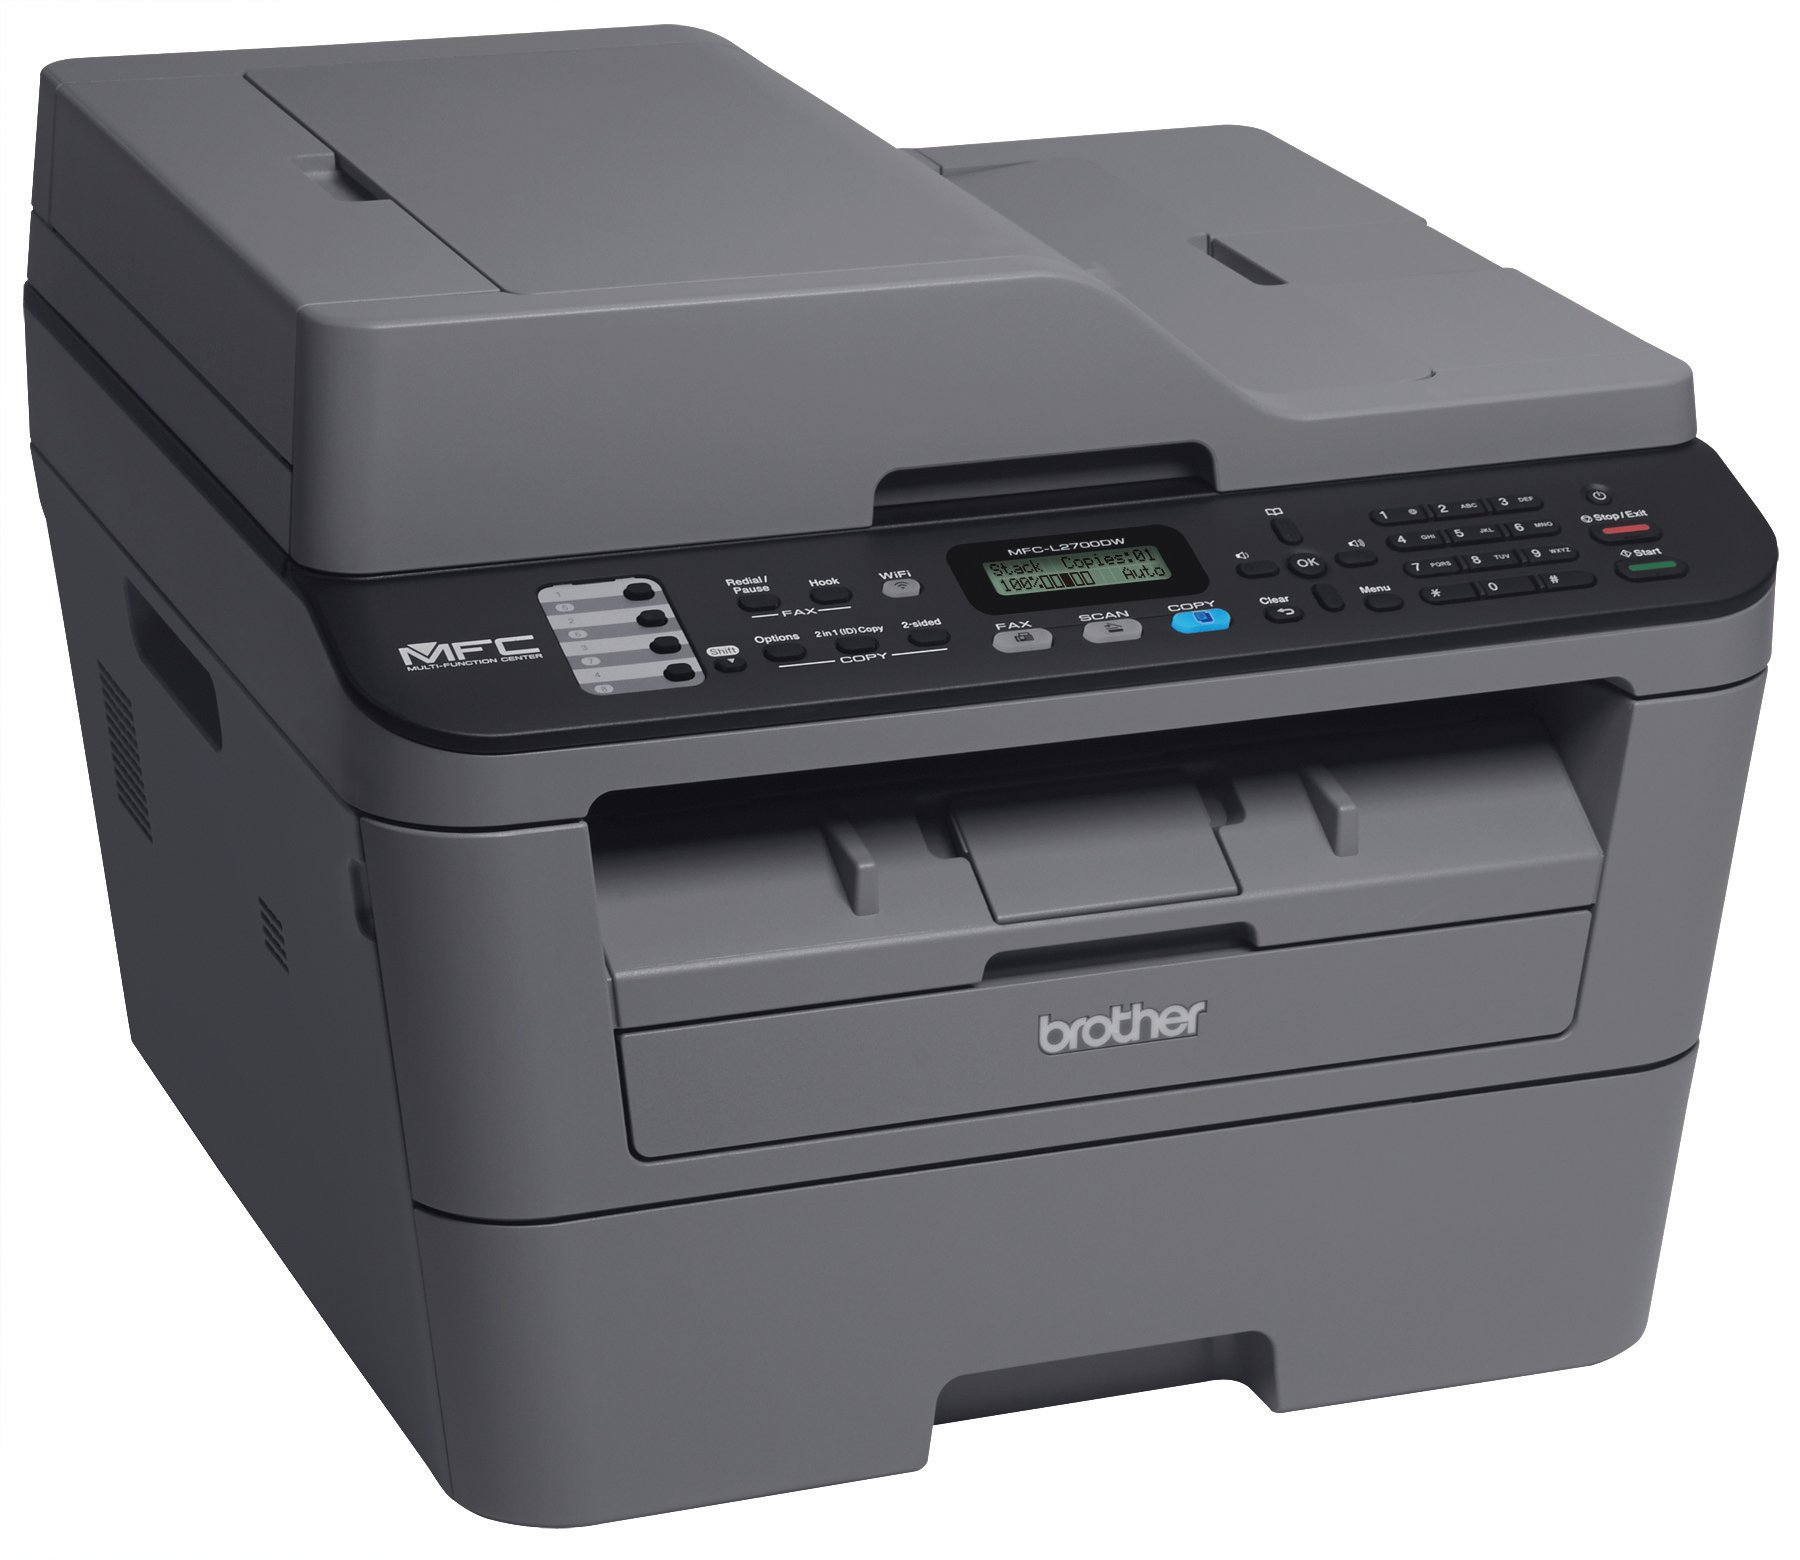 Brother MFCL2700DW All-In One Laser Printer with Wireless Networking and Duplex Printing, Amazon Dash Replenishment Enabled by Brother (Image #3)